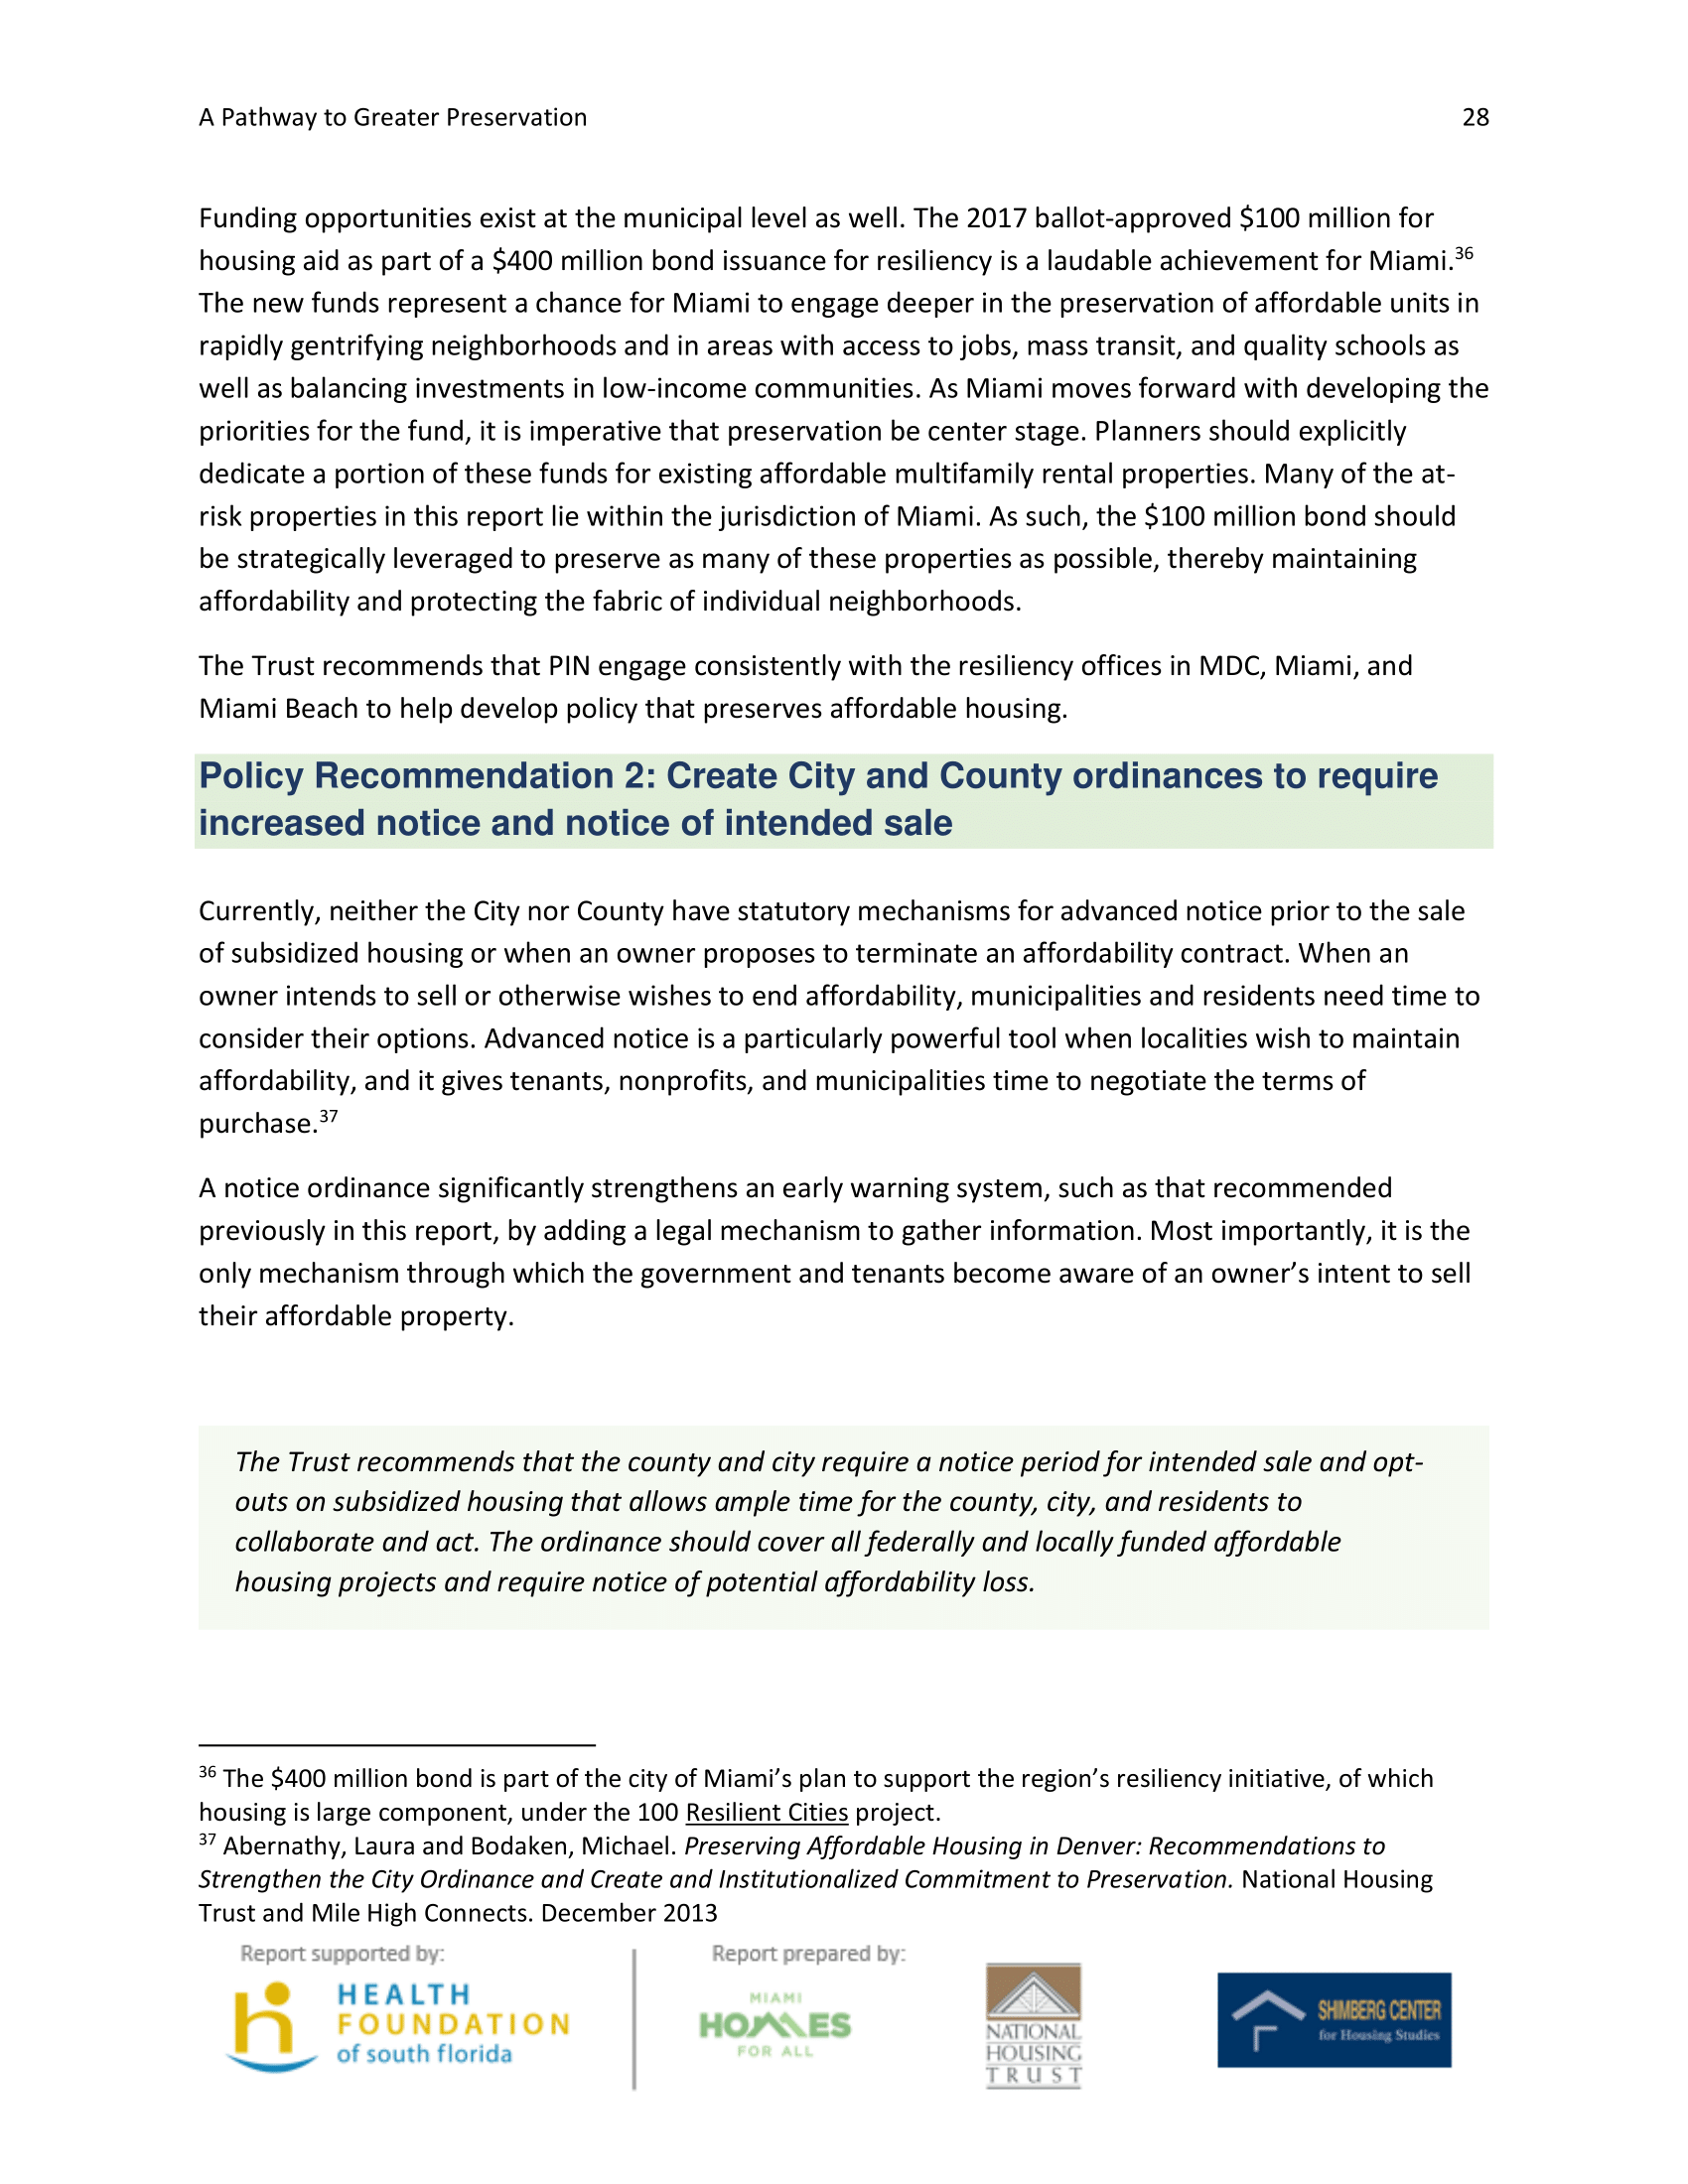 A Pathway to Greater Preservation - February 2018-36.png